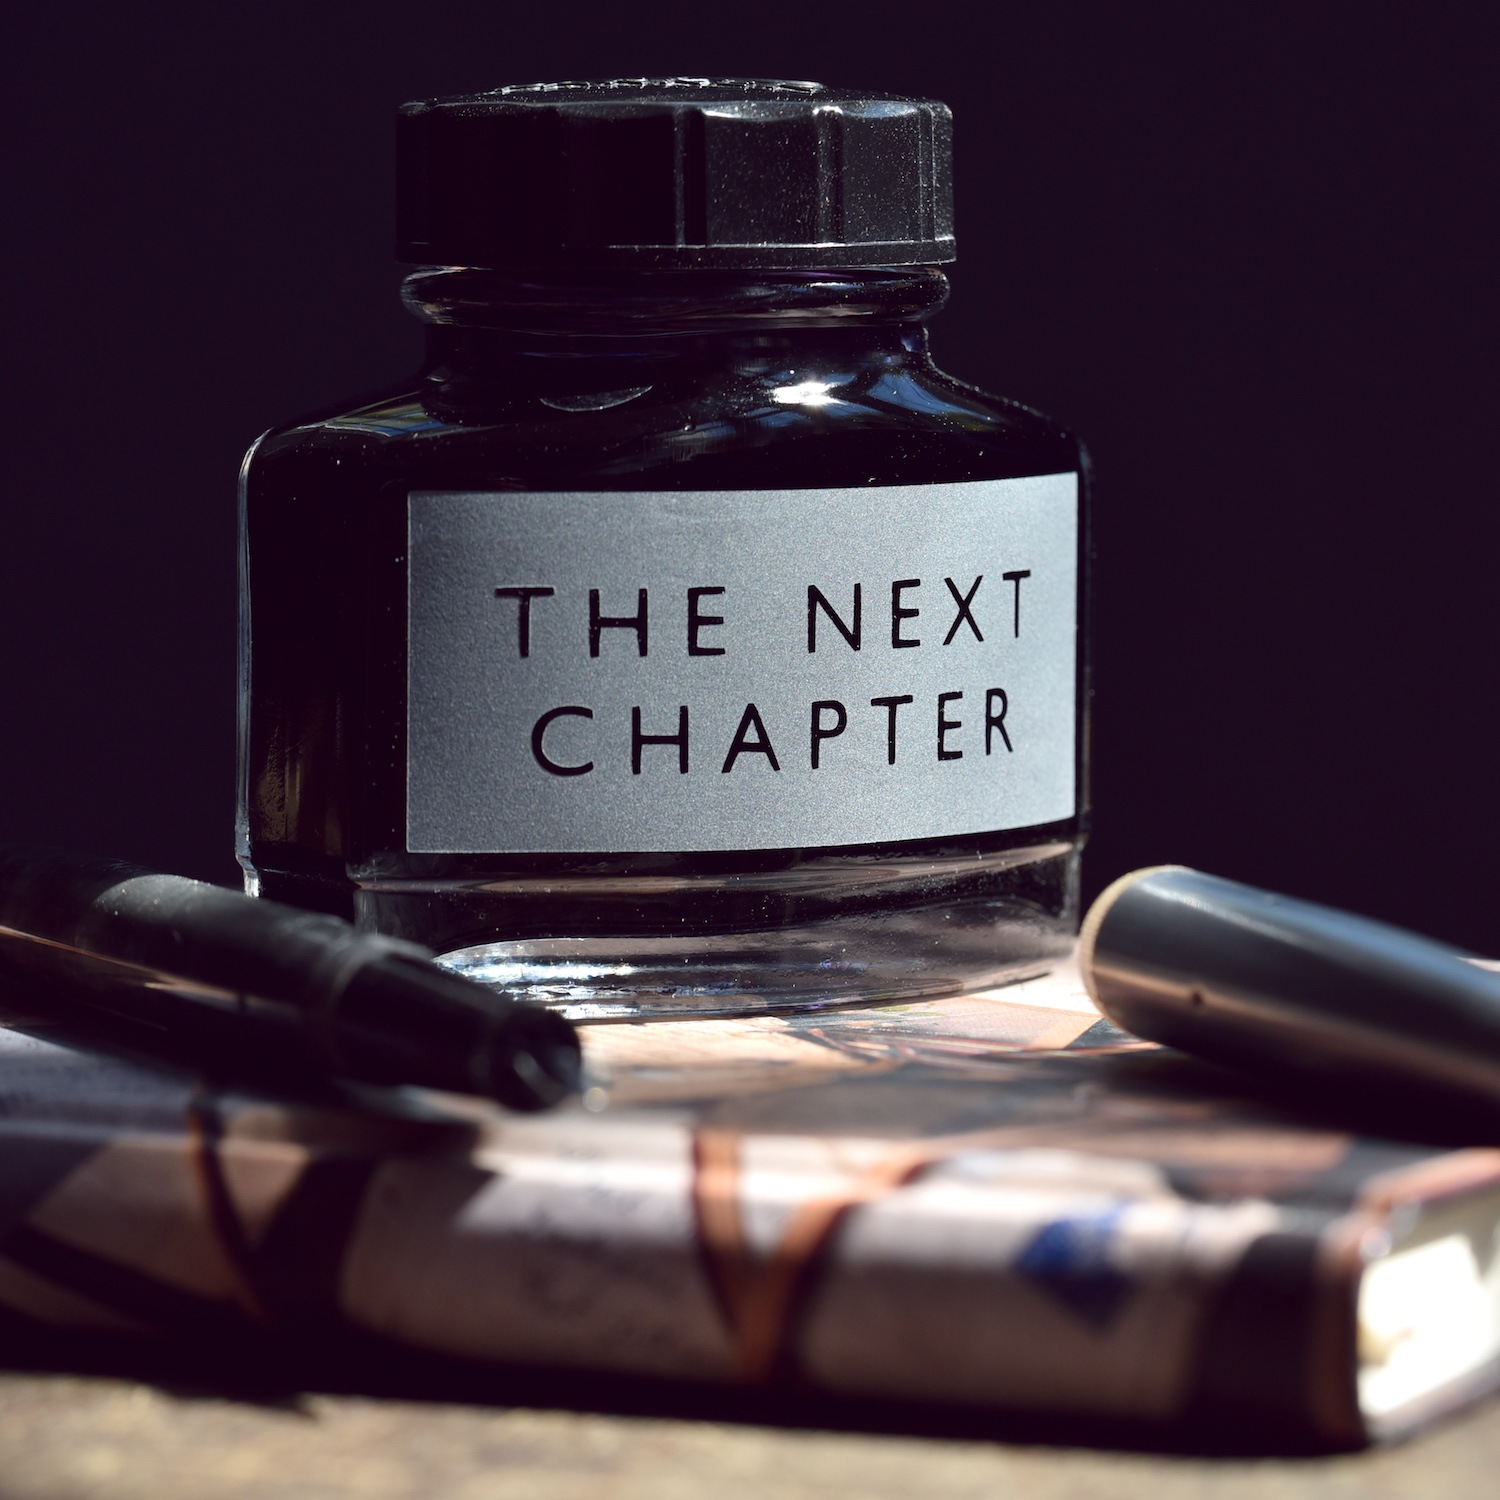 the-next-chapter-etched-parker-ink-bottle-vinegar-and-brown-paper.jpg